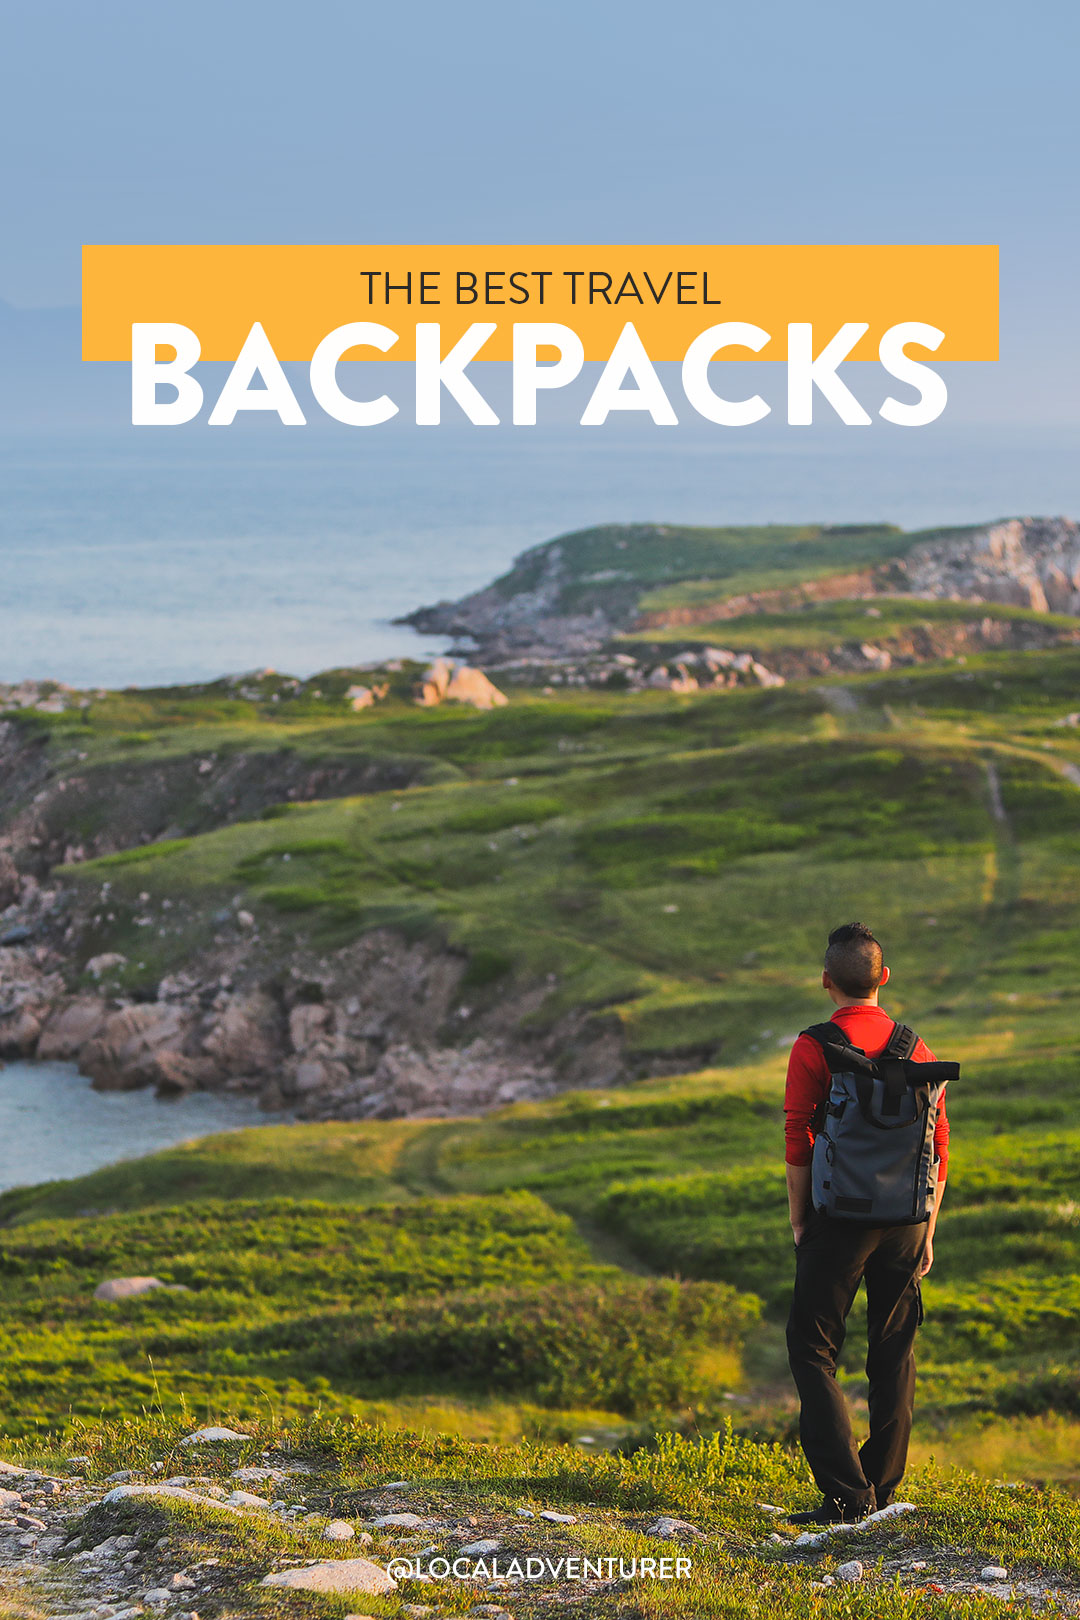 Best Backpacks 2020.15 Best Travel Backpacks You Need To Check Out In 2020